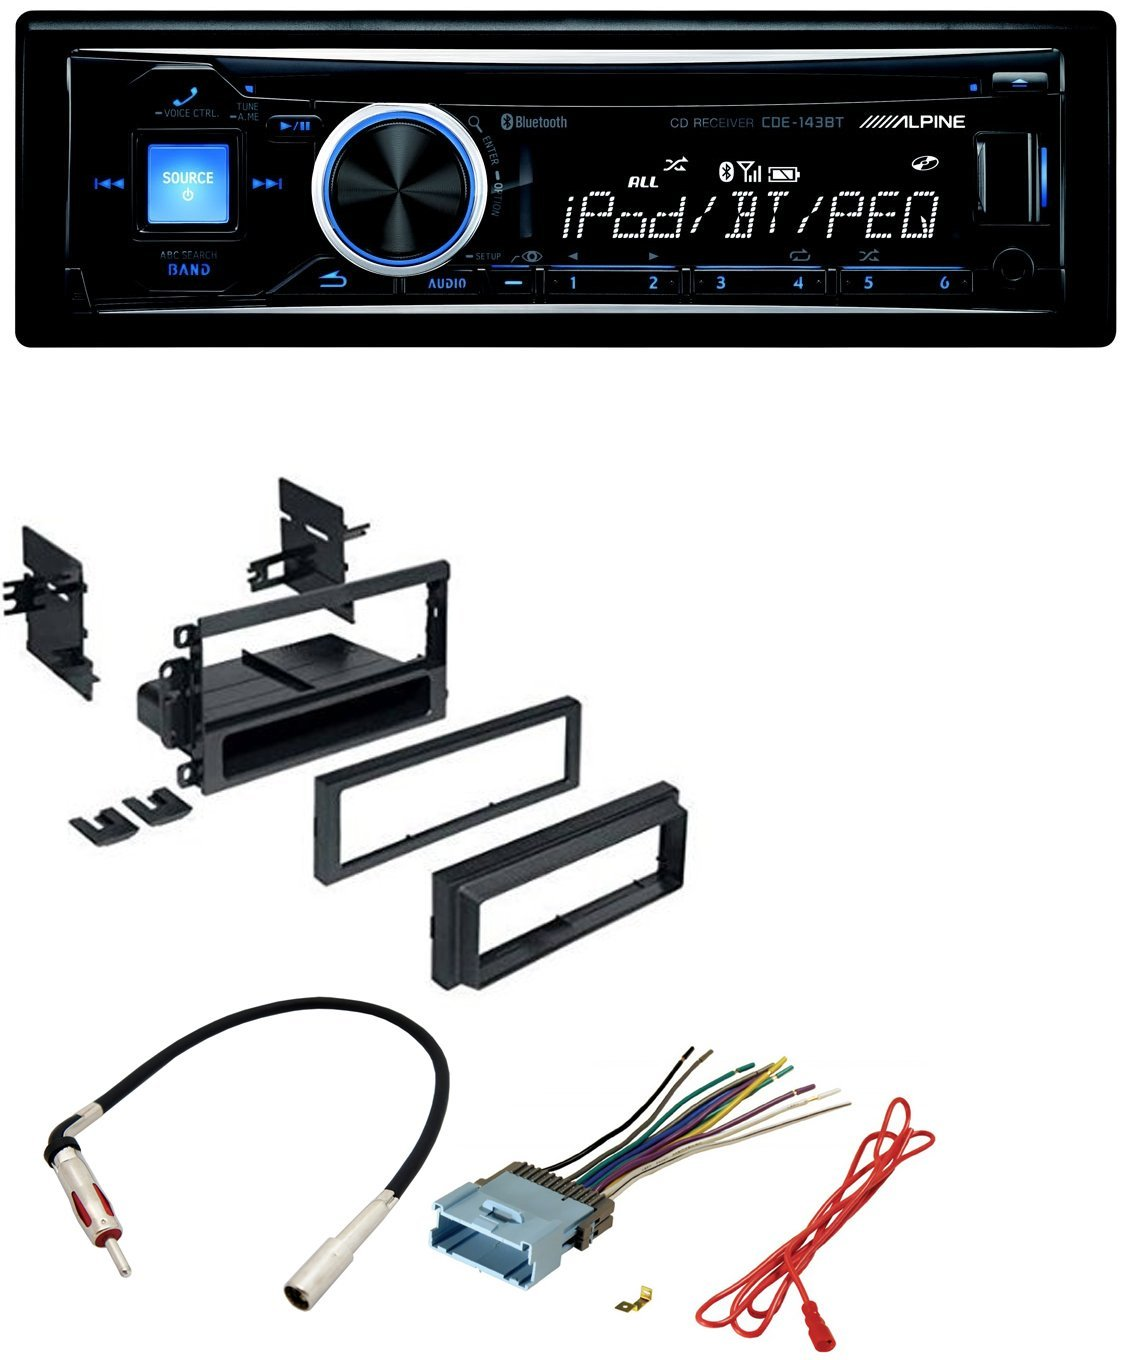 Car Radio Stereo Dash Kit Harness Antenna For Gm Gmc Wiring Workstations Chevy Cadillac Pontiac With Alpine Cd Mp3 Front Usb Aux Inputs Bluetooth